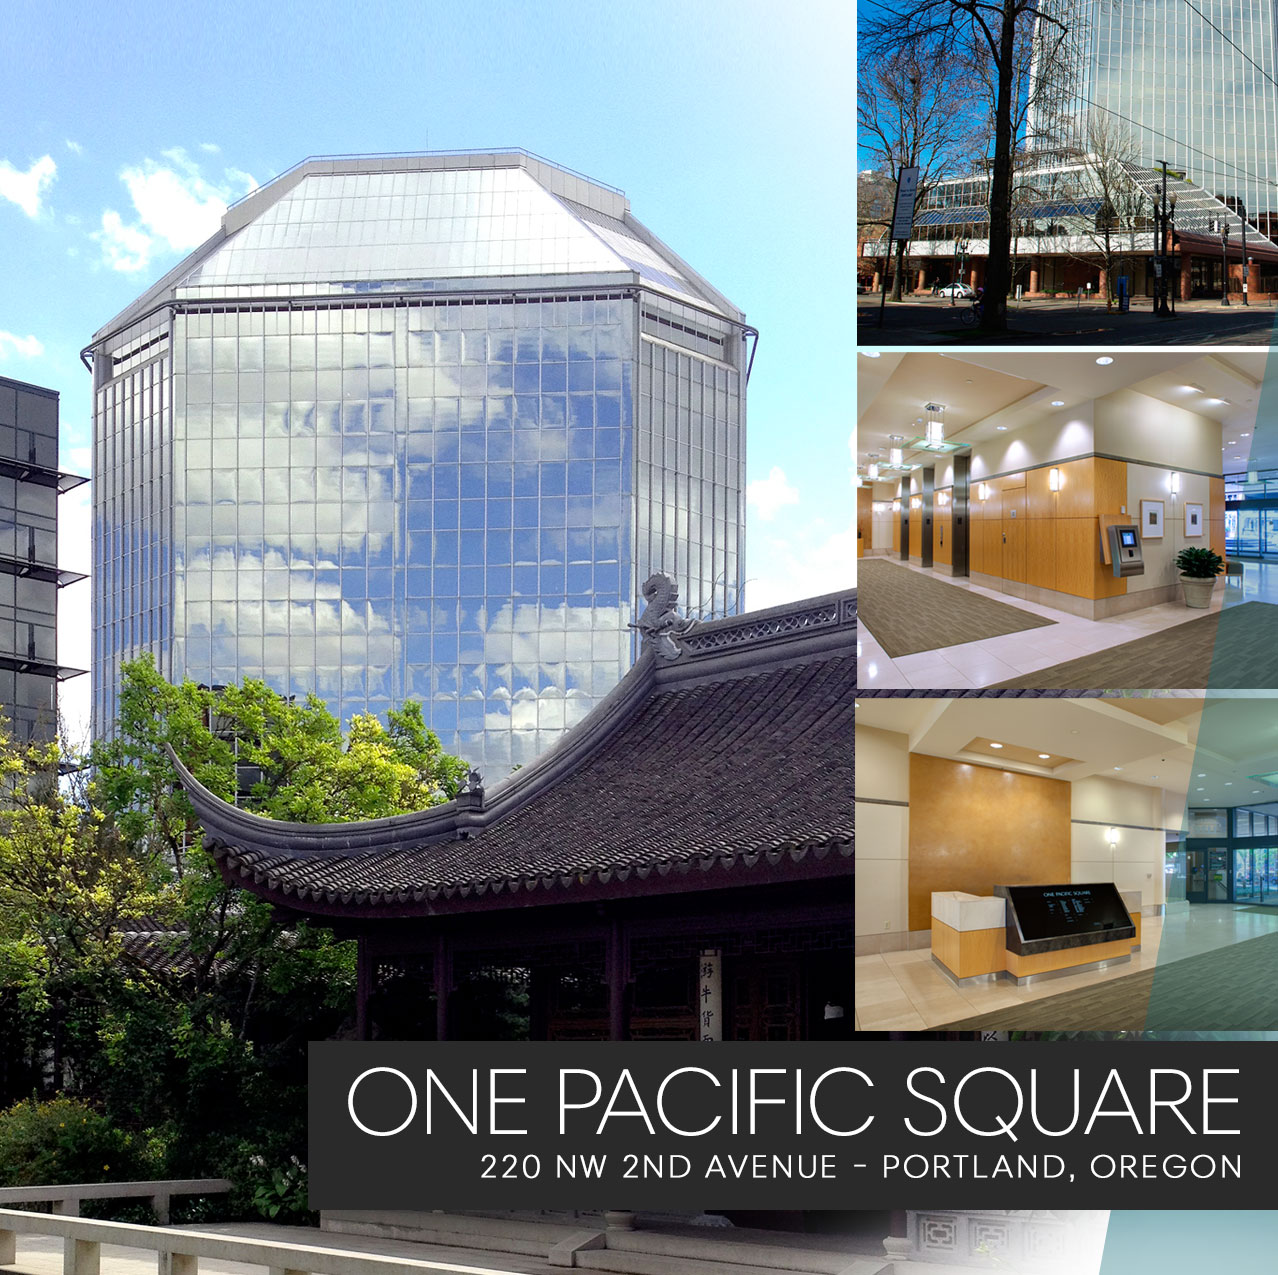 One Pacific Square